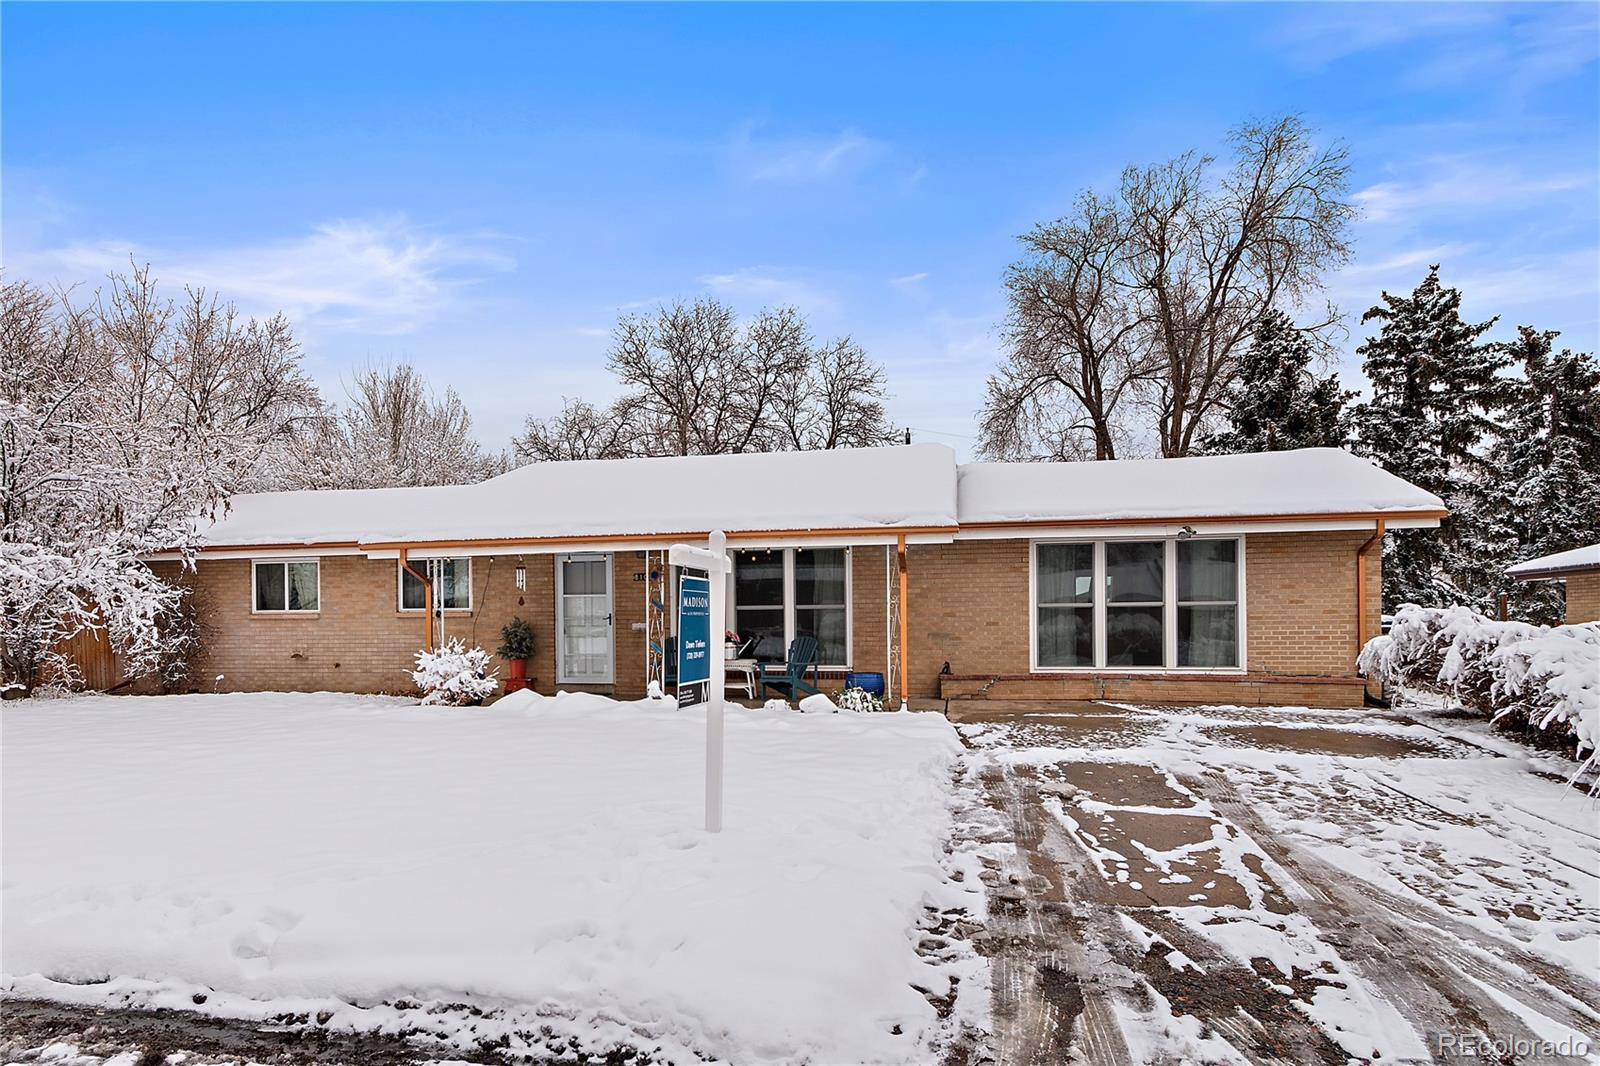 MLS# 5584211 - 2 - 8105 W 16th Place, Lakewood, CO 80214